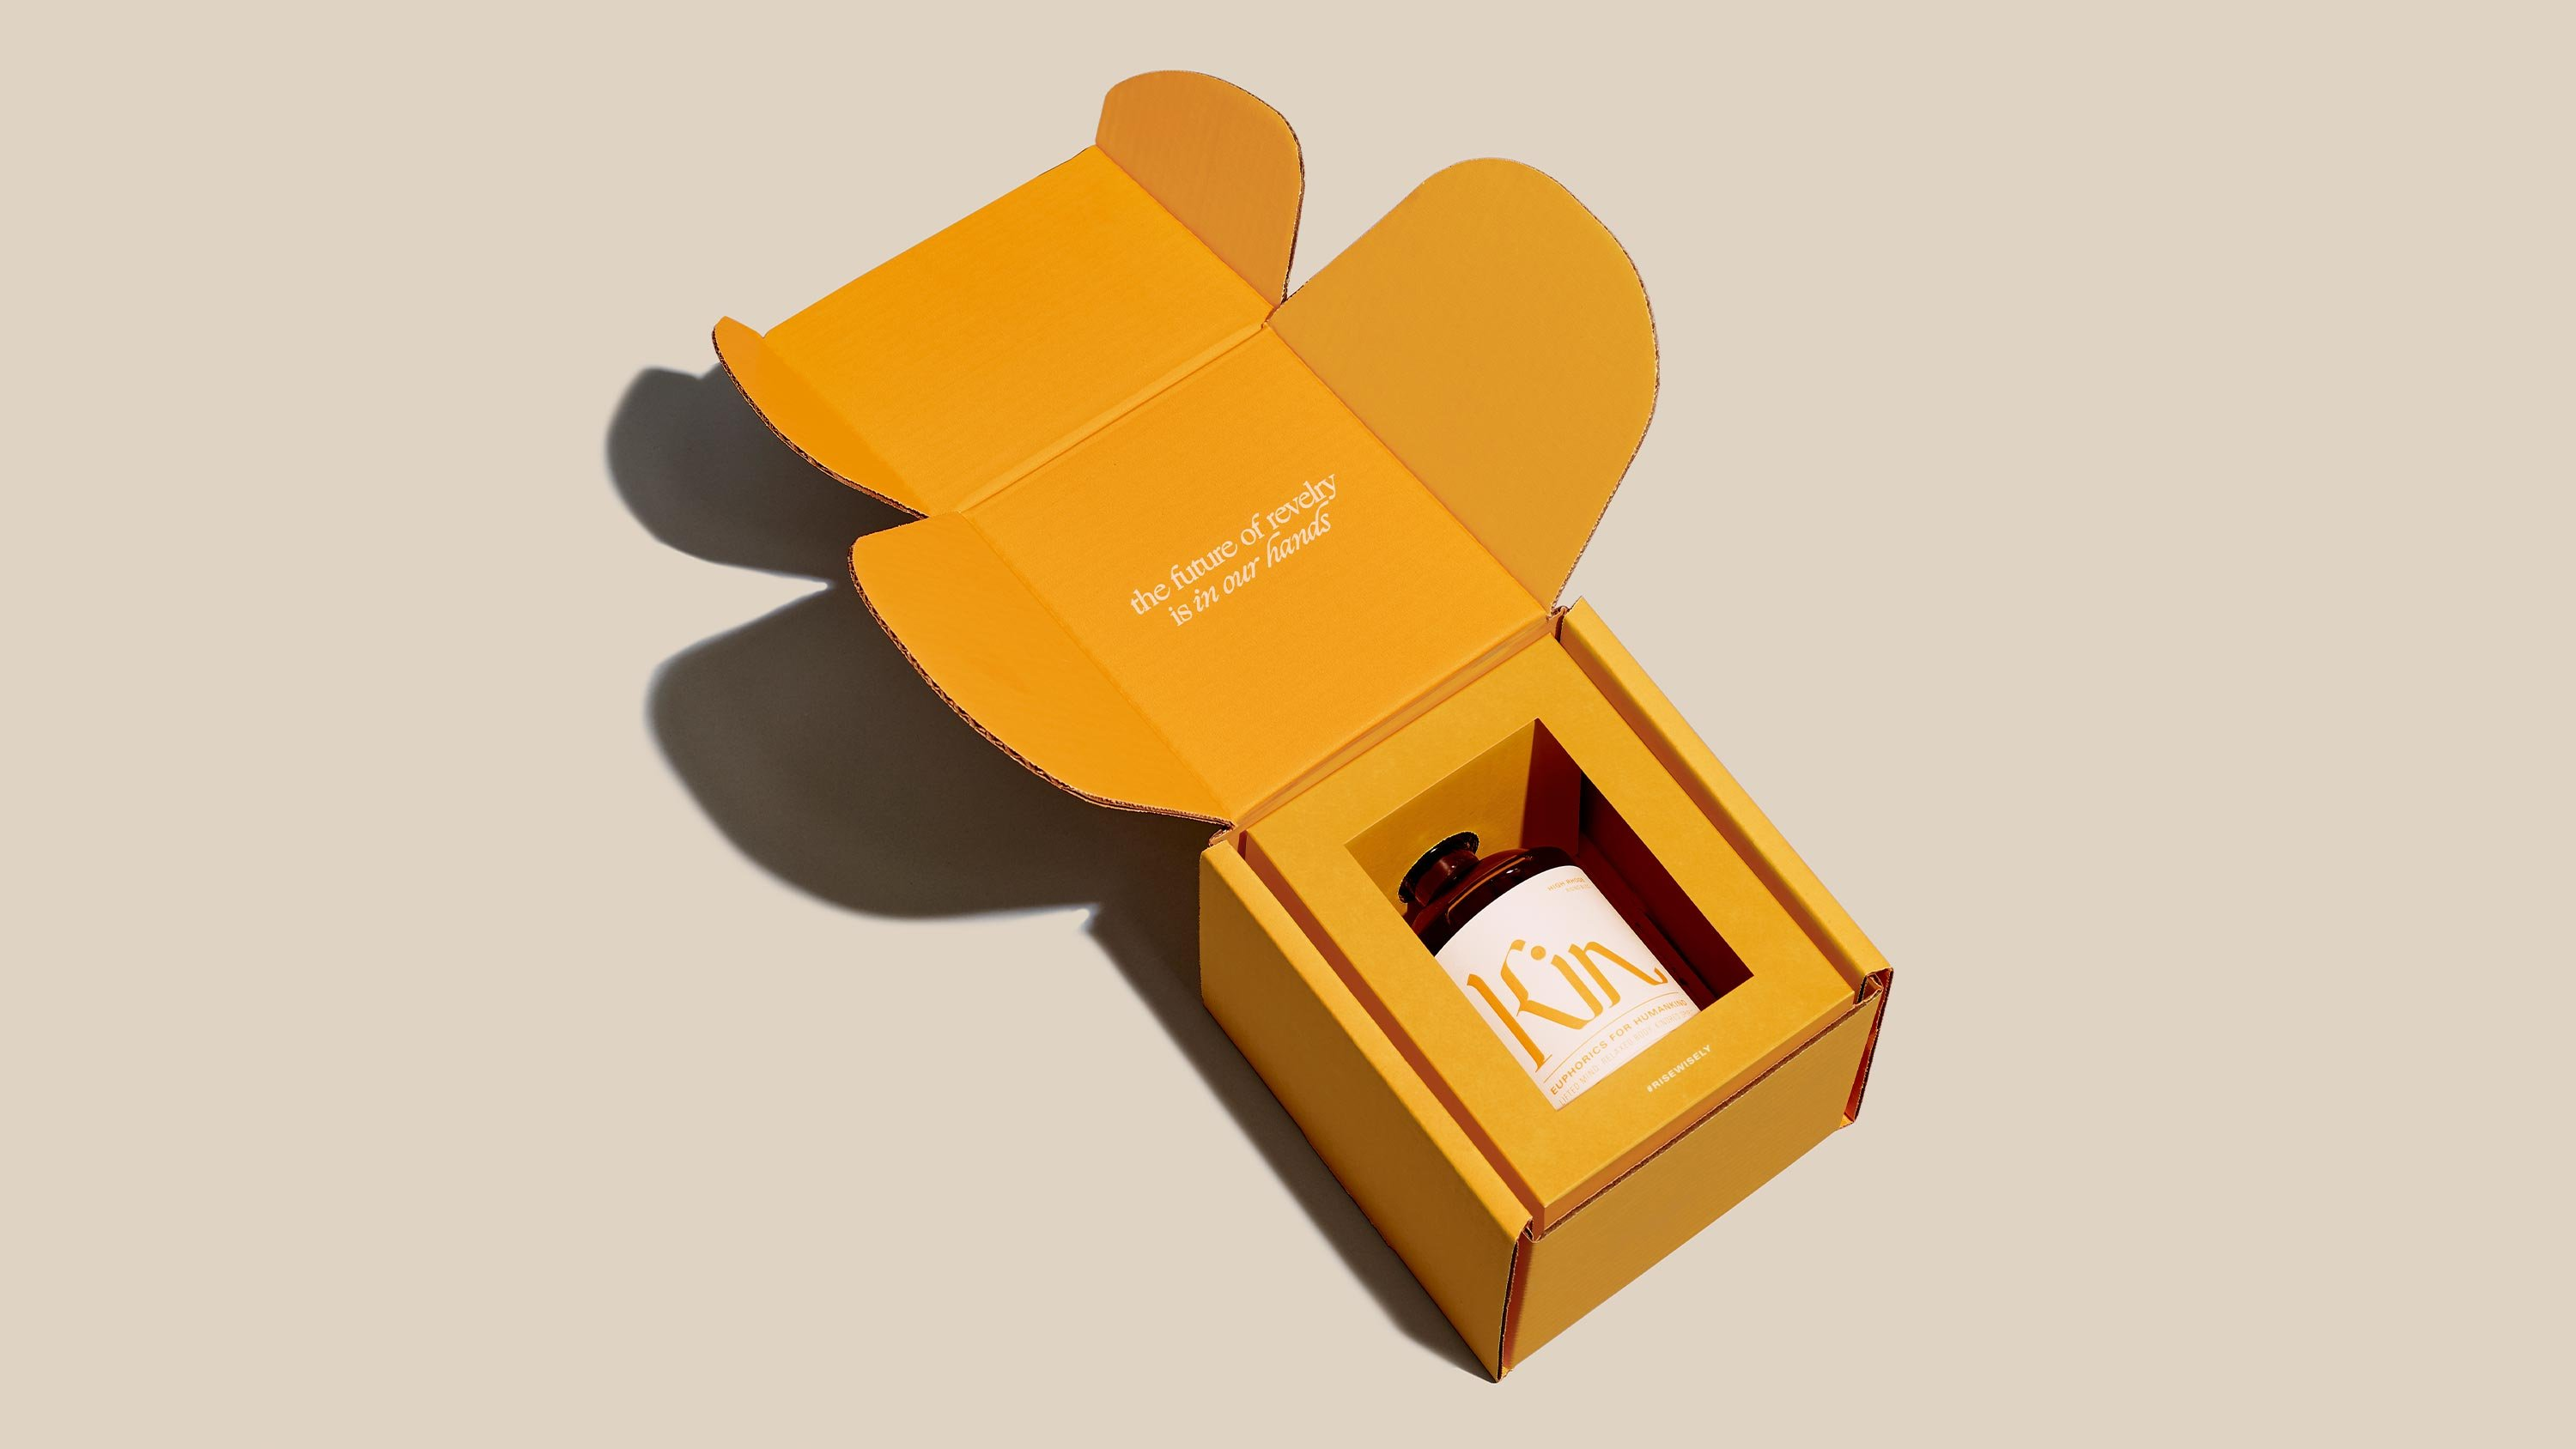 Kin Euphorics Packaging Design by RoAndCo, yellow box with bottle inside